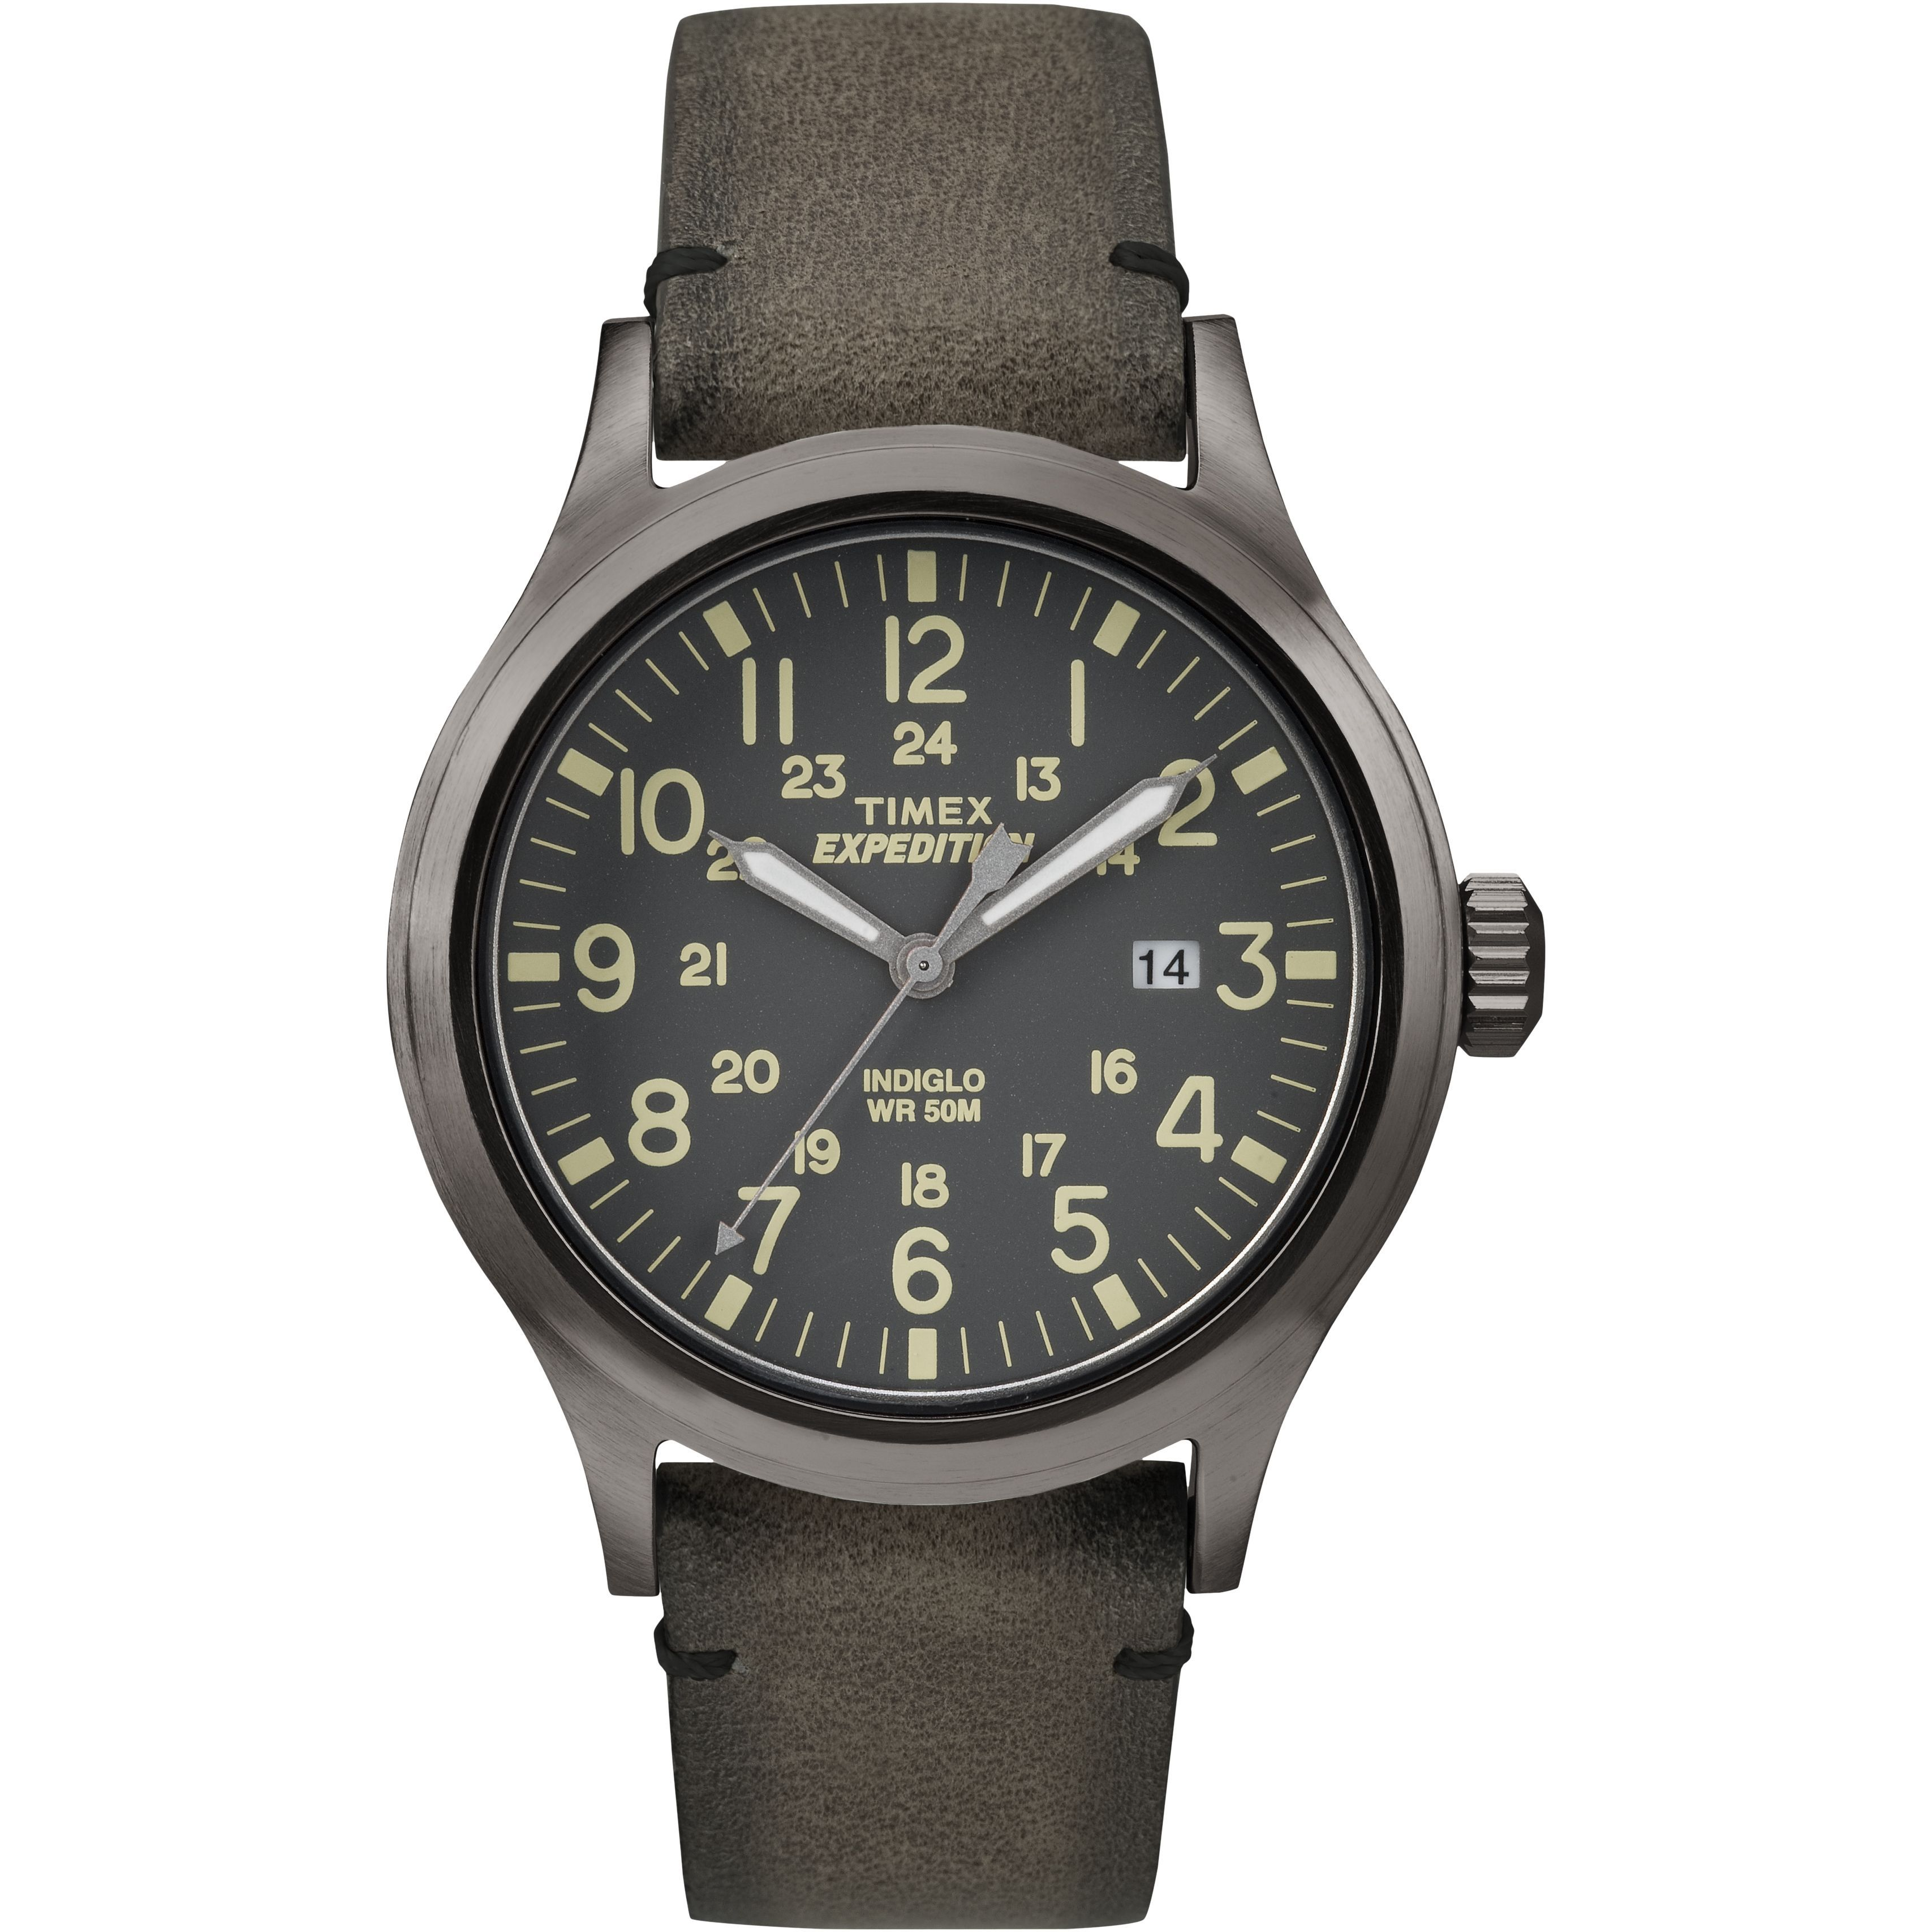 this style in pick vintage mod of guide rug todd watches snyder strap feature x timex help out stand military nato the watch week inspired timepiece design a and rugged